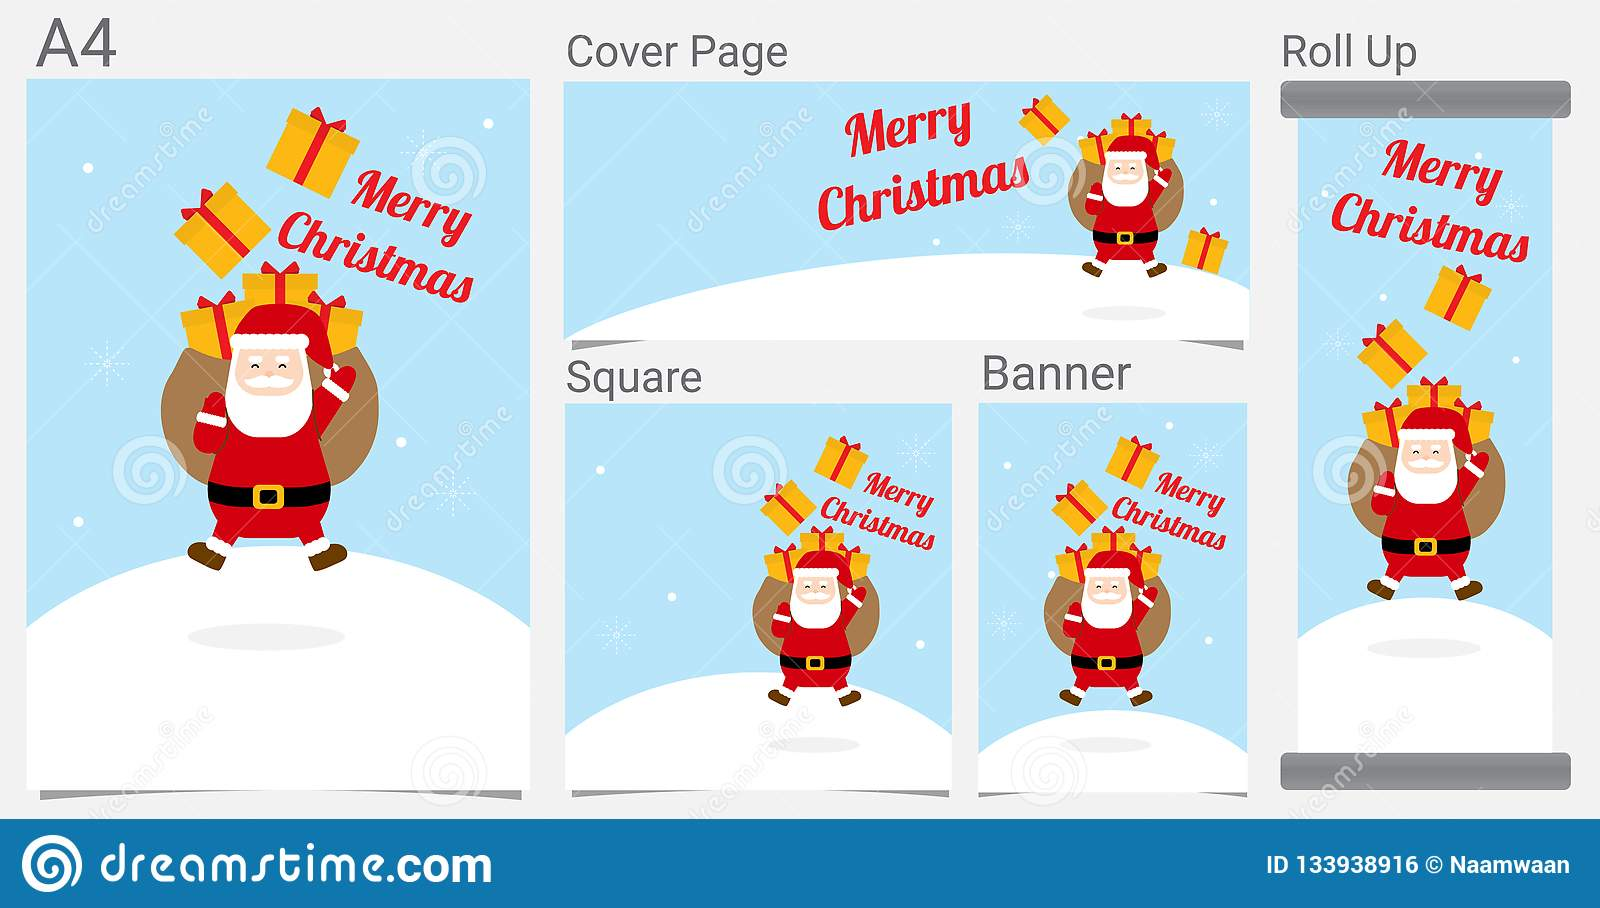 merry christmas and happy new year funny santa claus and ribbon gift cartoon for website banner poster social network design stock vector illustration of claus page 133938916 dreamstime com